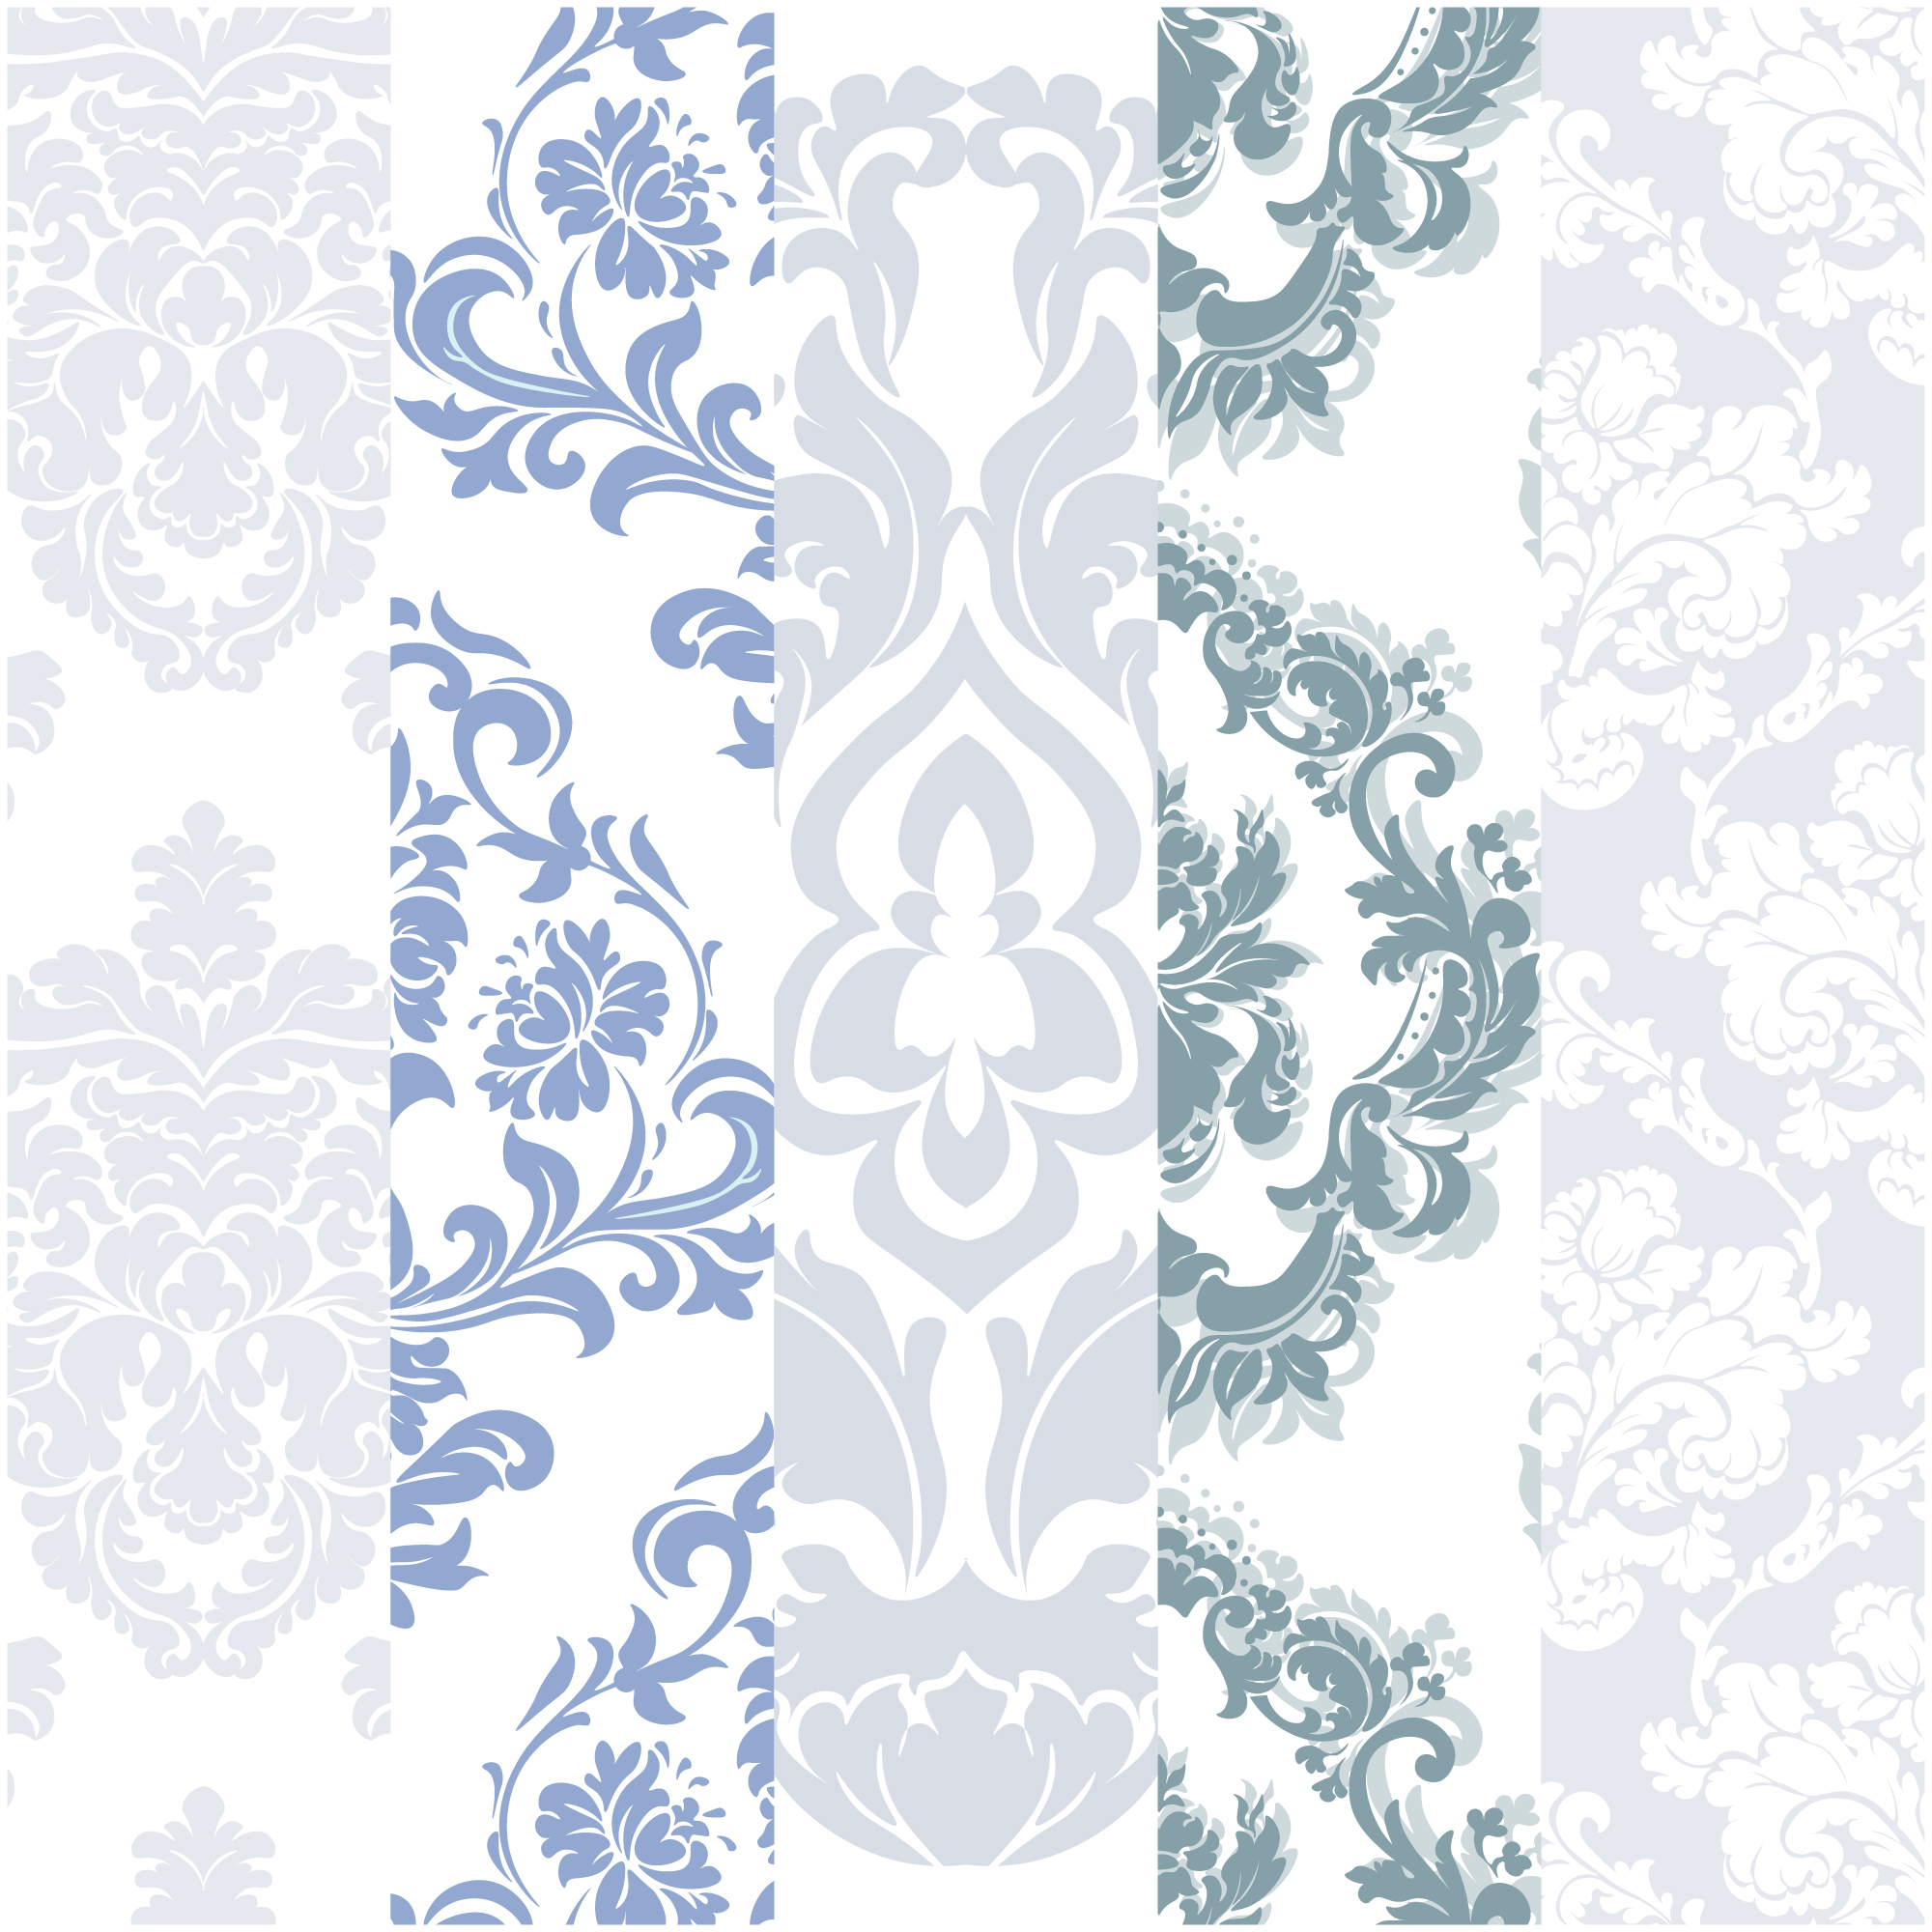 Mix pattern background collection